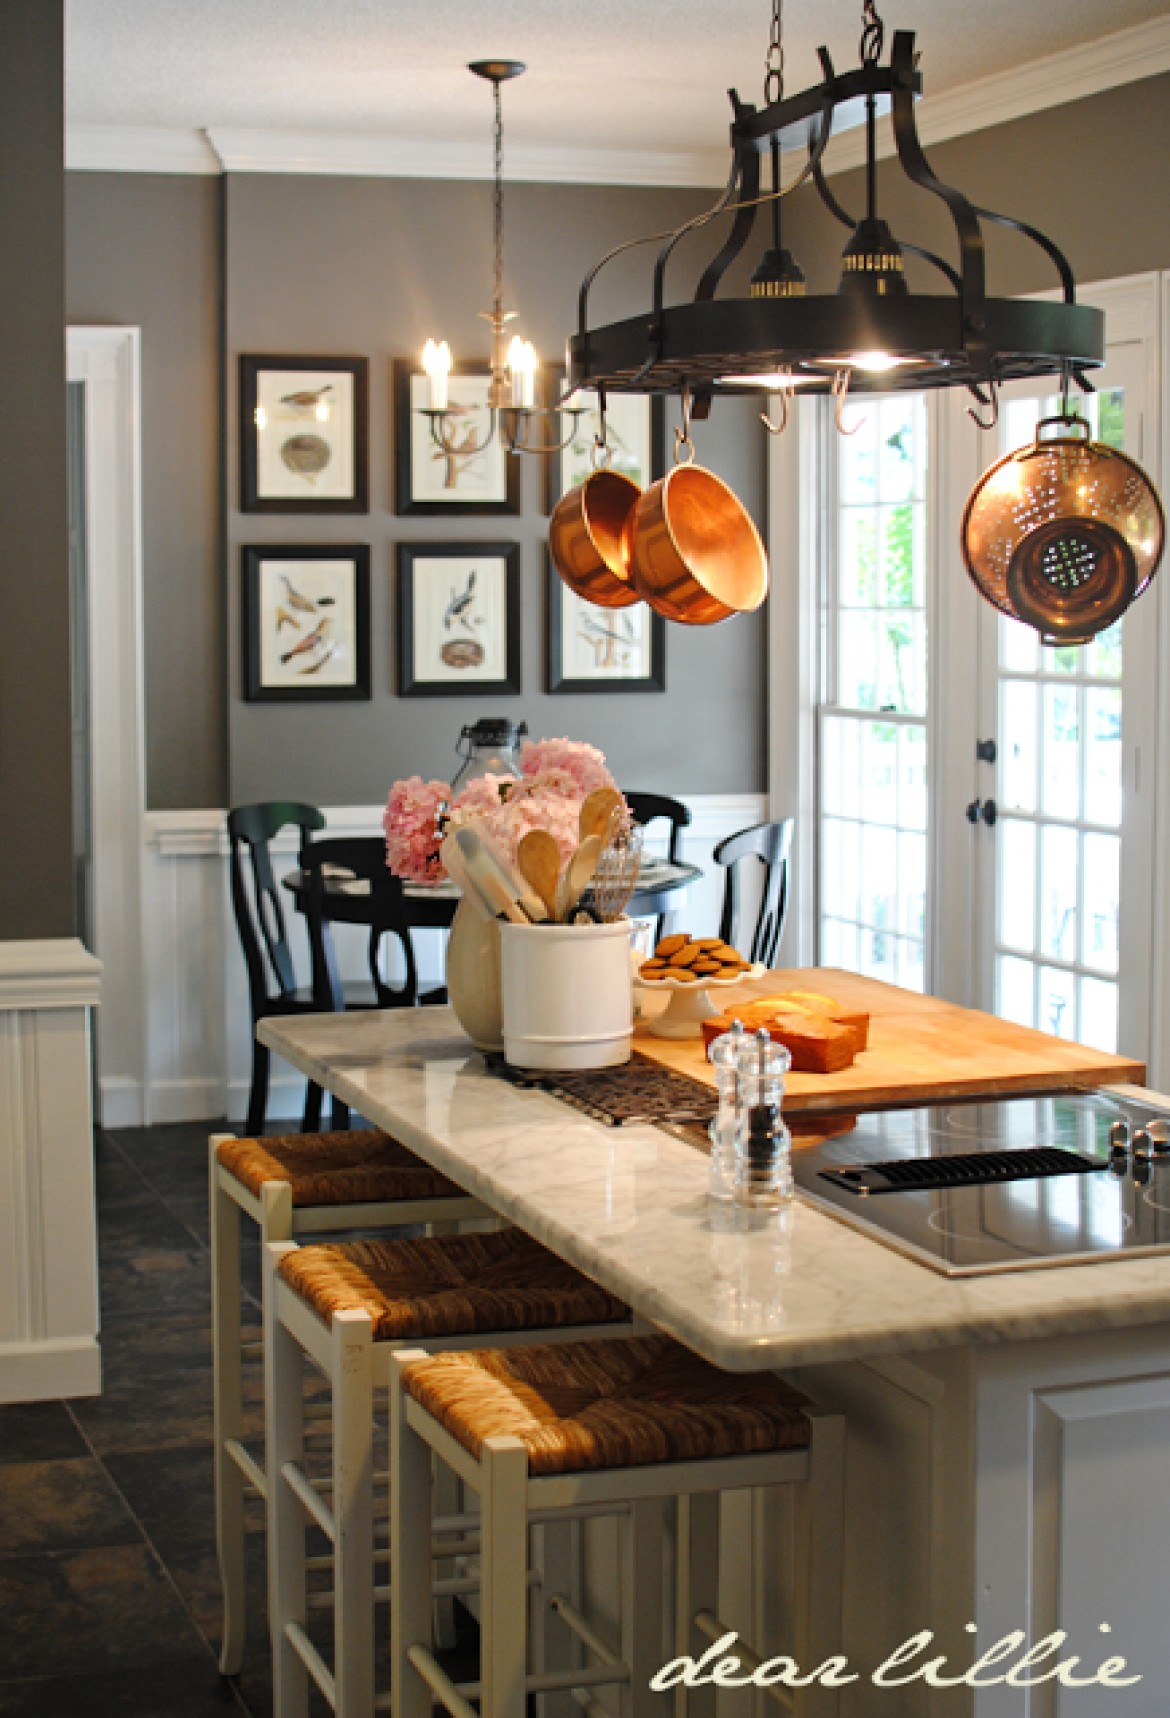 kitchen island pot rack lighting ideas on foter rh foter com Kitchen Island Light Pot Rack 2 light kitchen pot rack